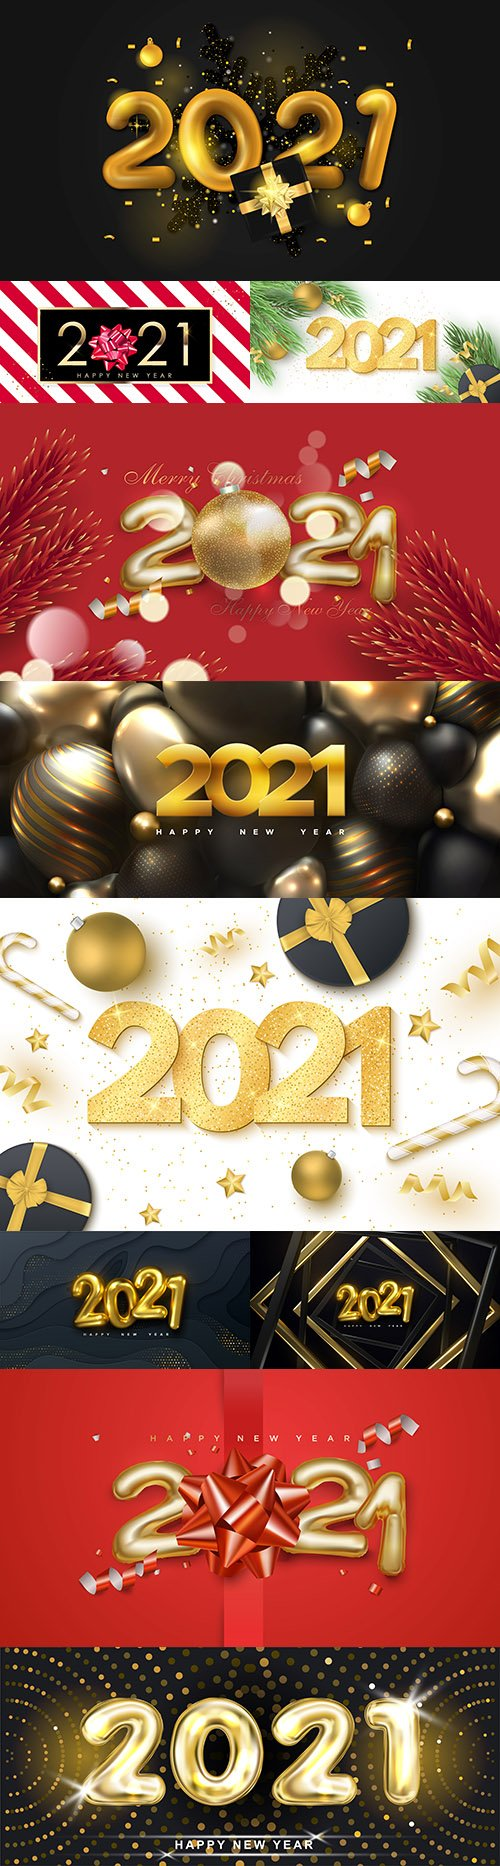 2021 New Year's illustrations Festive design inscription 3